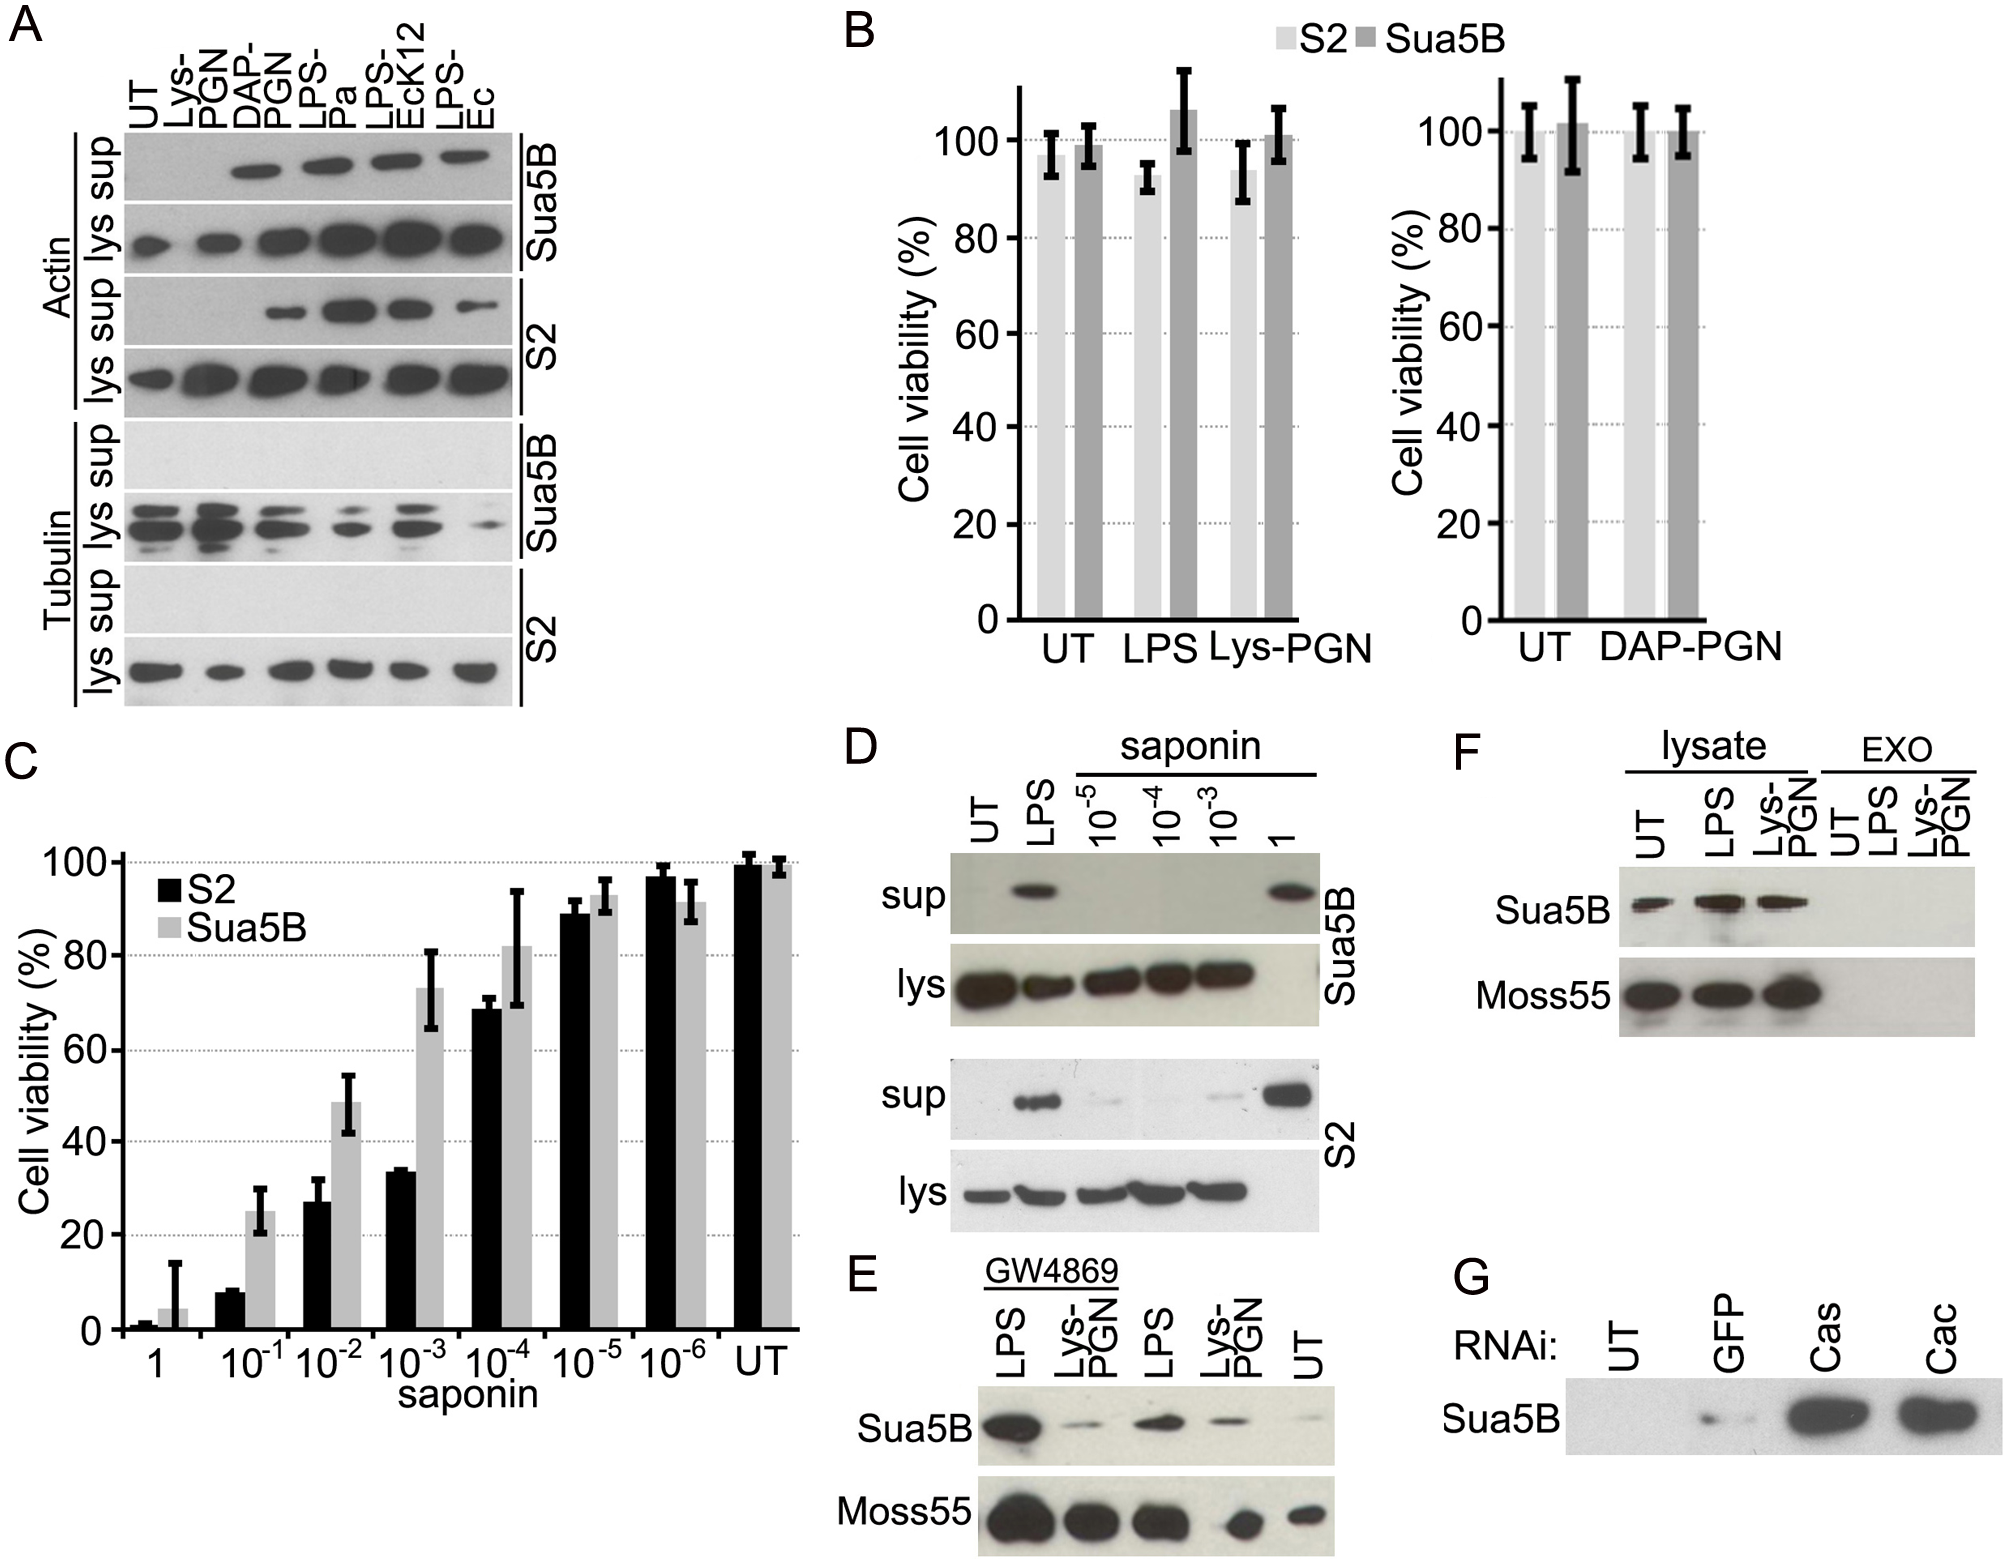 Actin is secreted into the cell culture supernatant fraction upon immune challenge via an exosome independent mechanism that is regulated by immune pathways.